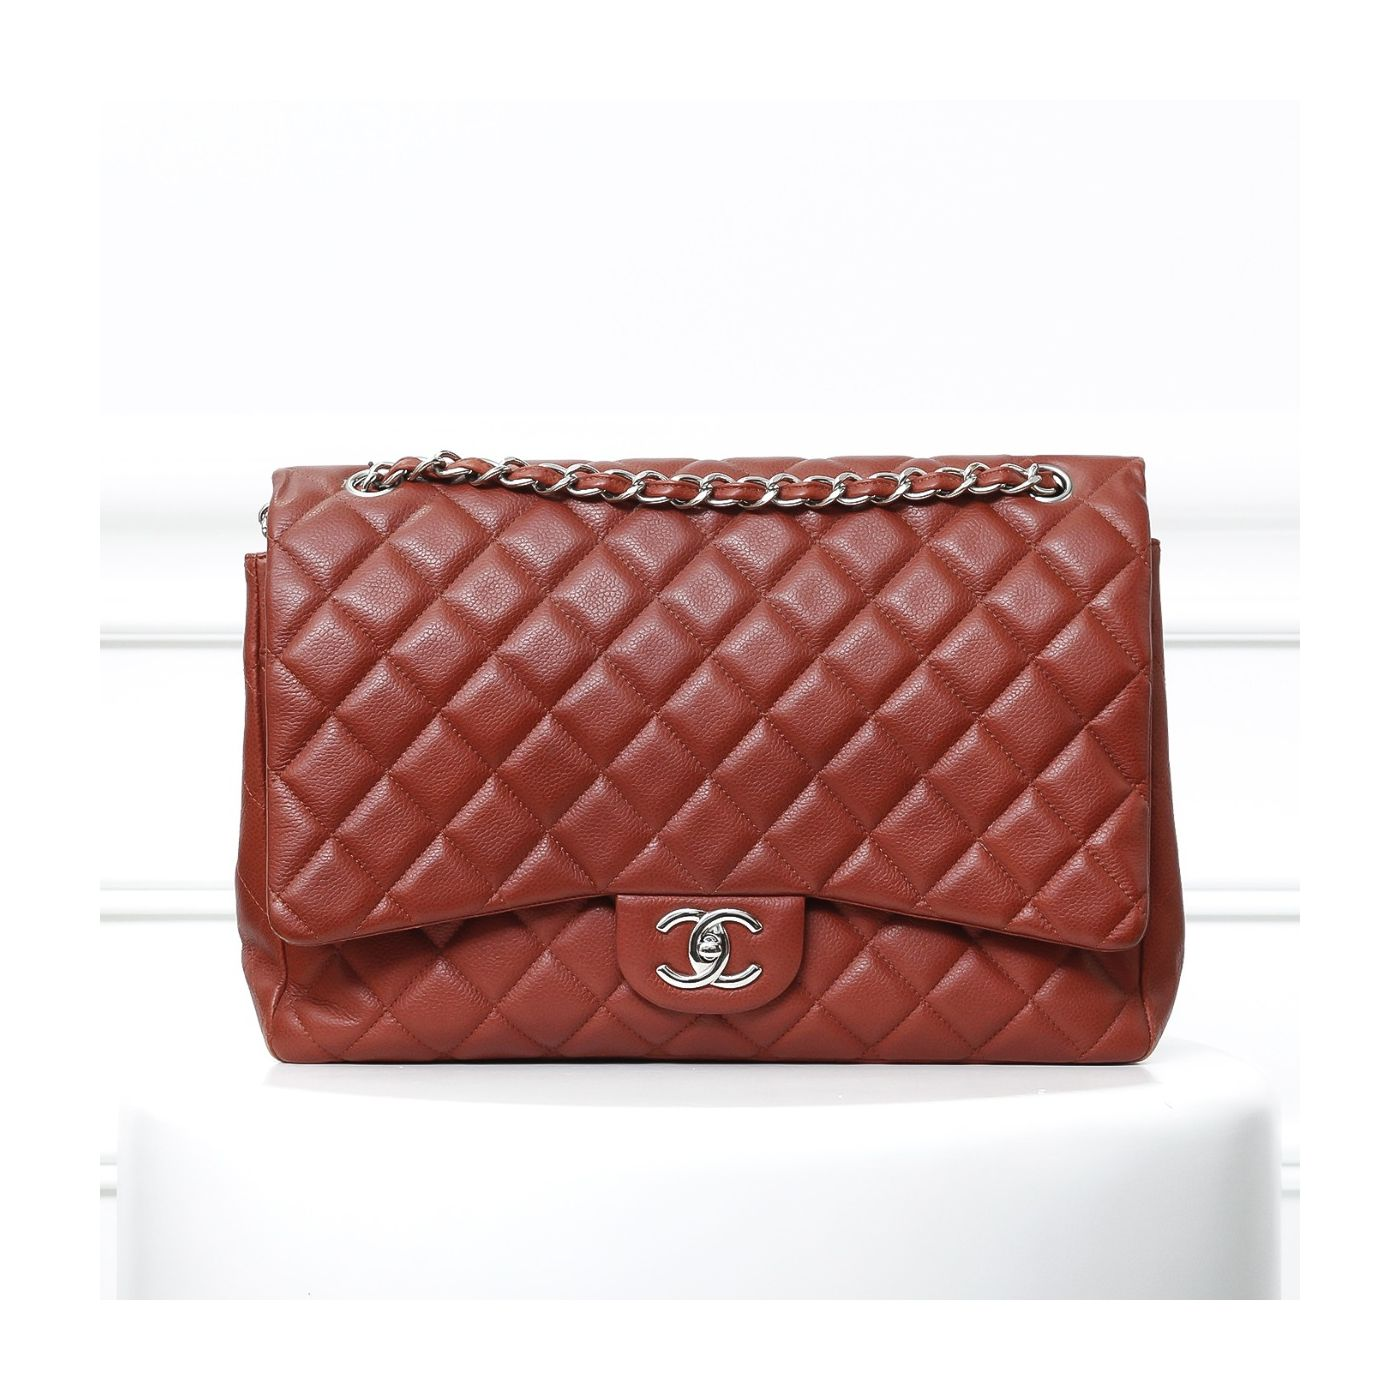 Chanel Red Orange maxi double flap